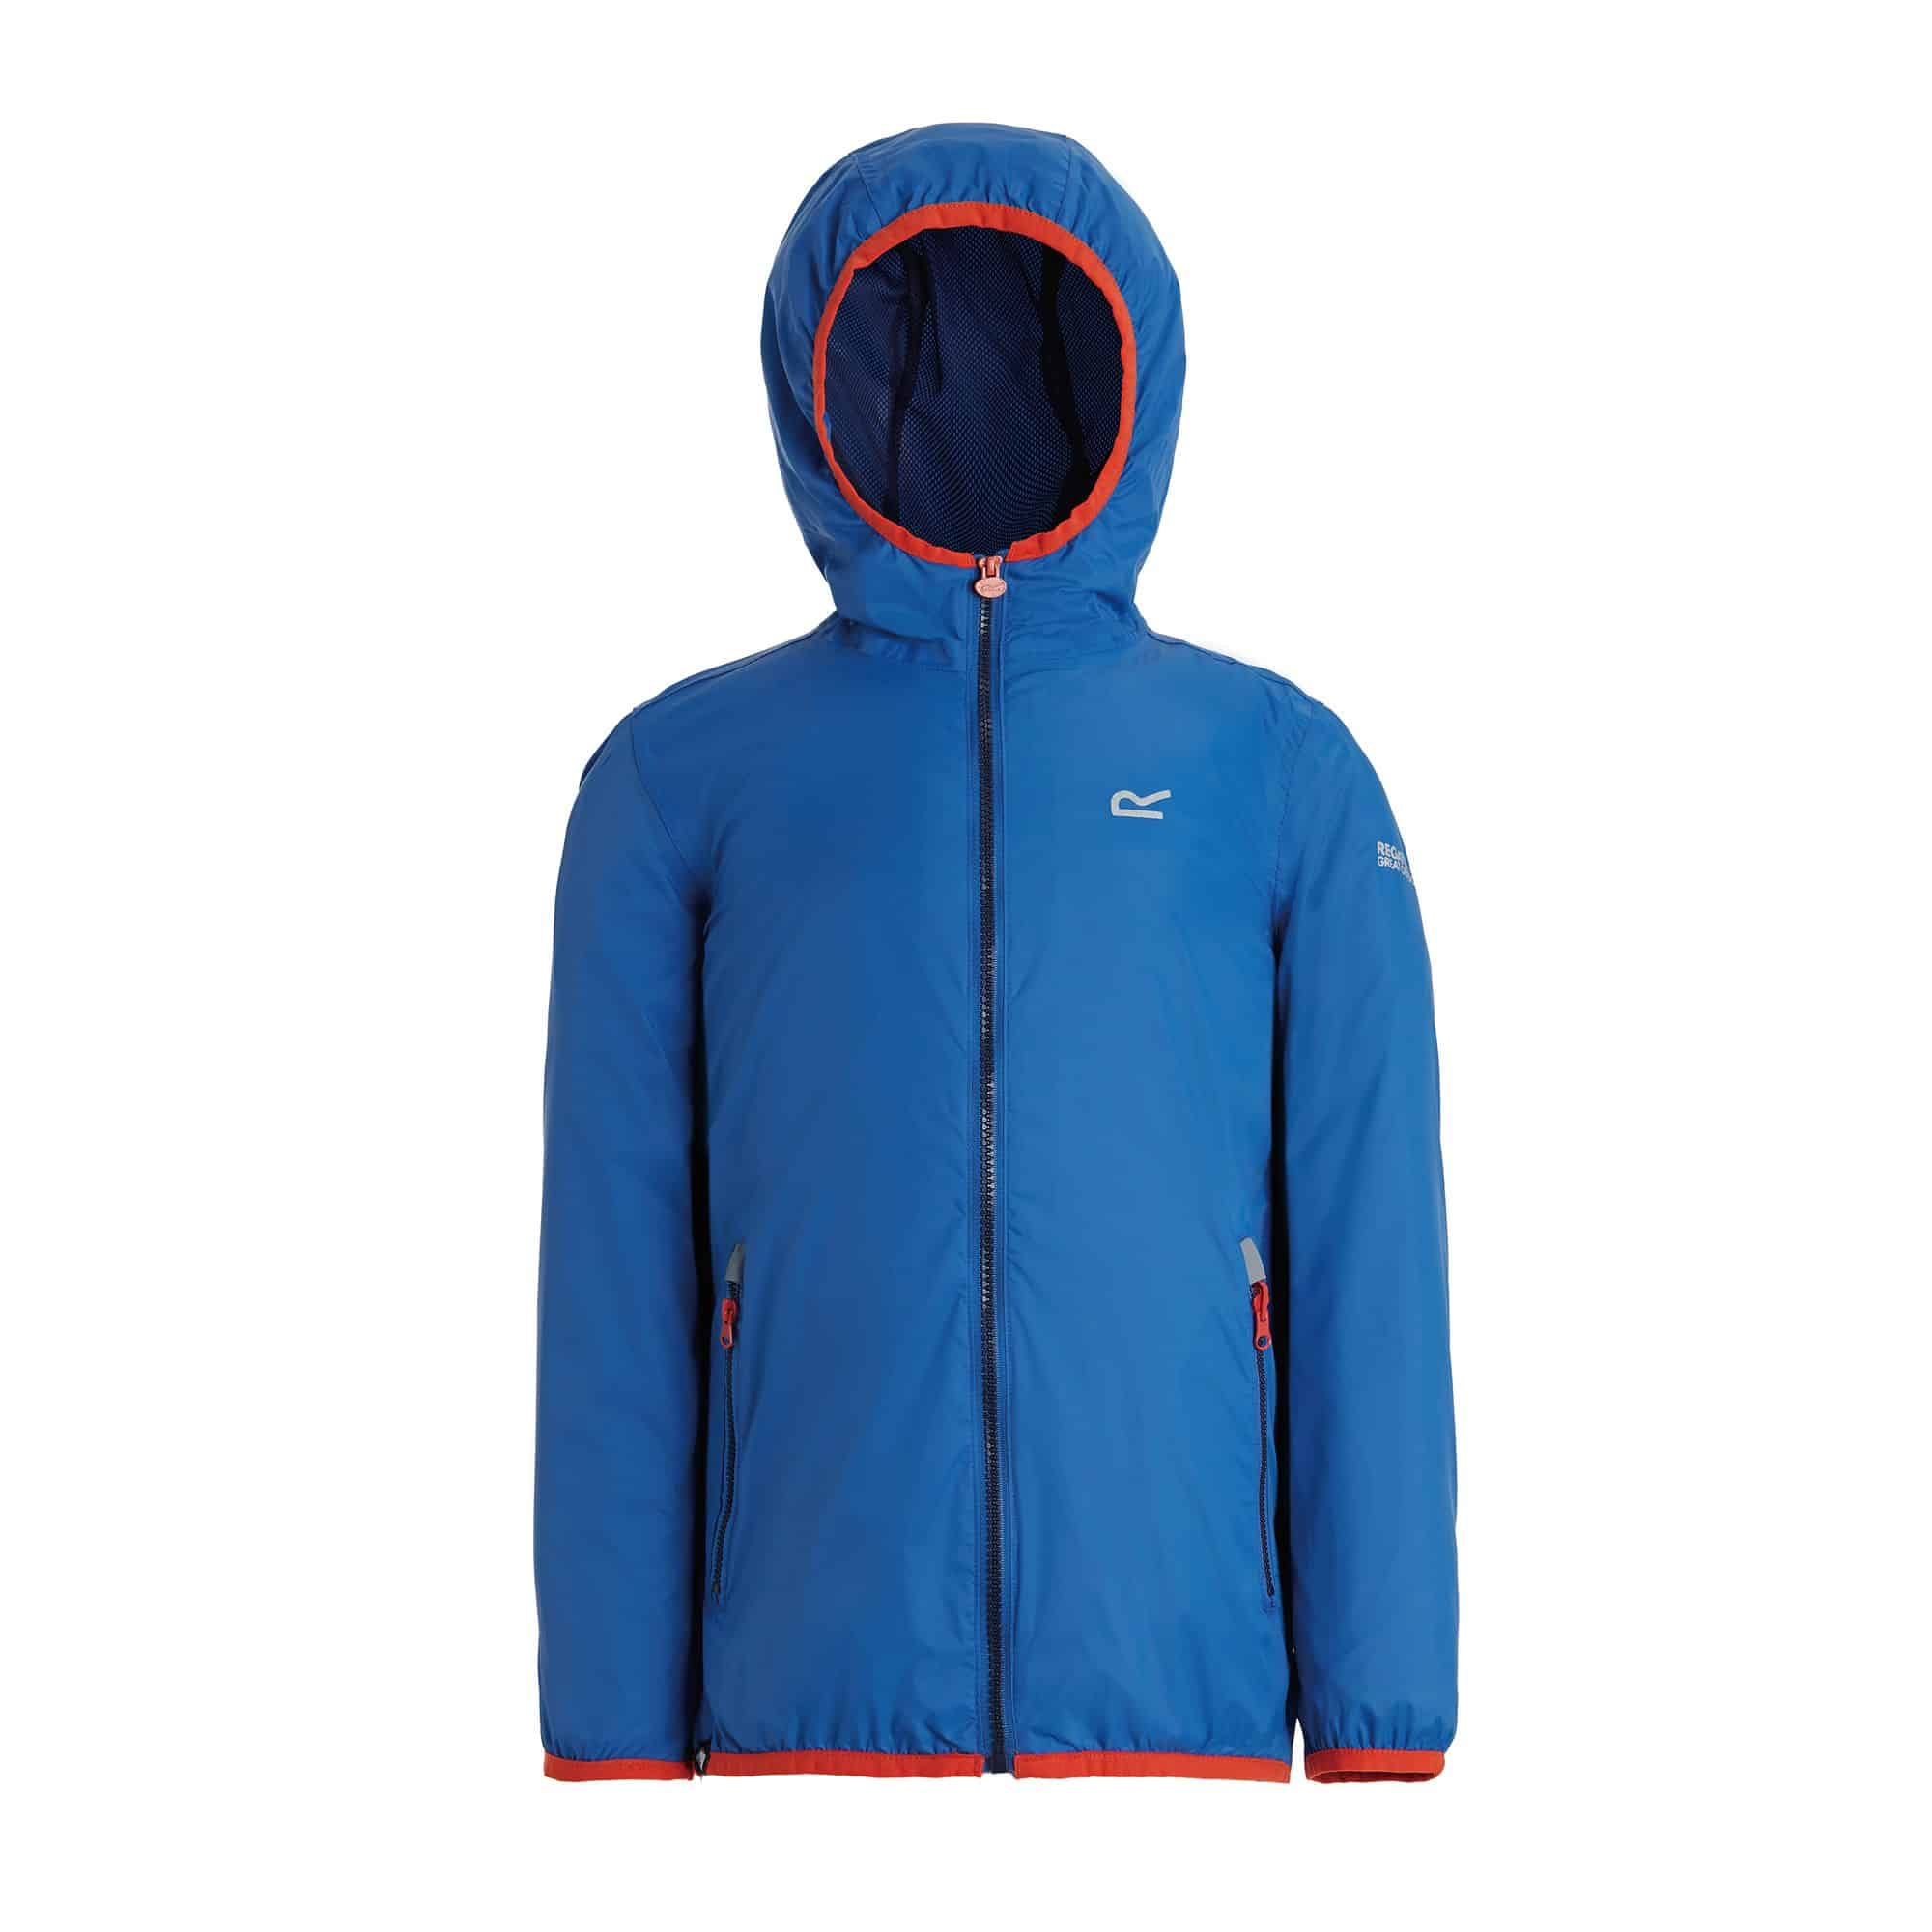 waterproof jacket regatta